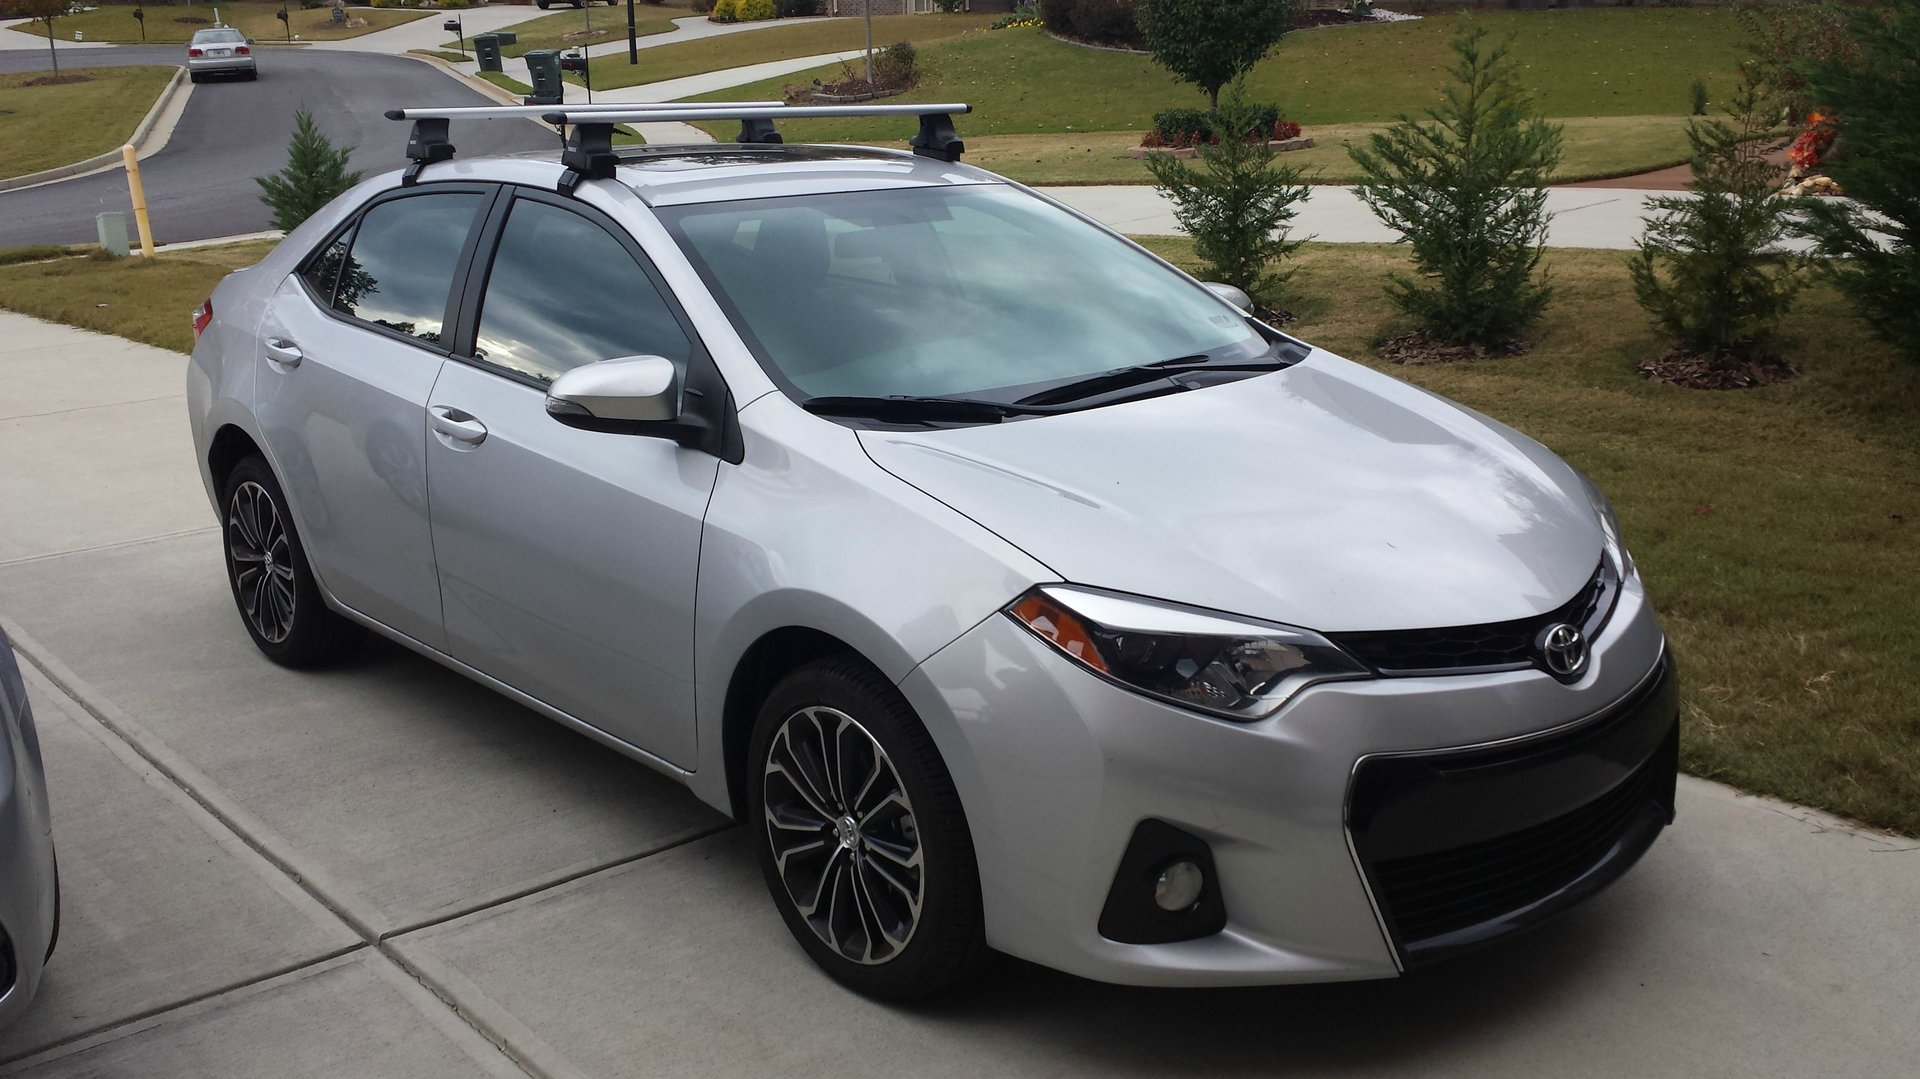 Roof Rack for 2015 Corolla   Toyota Nation Forum